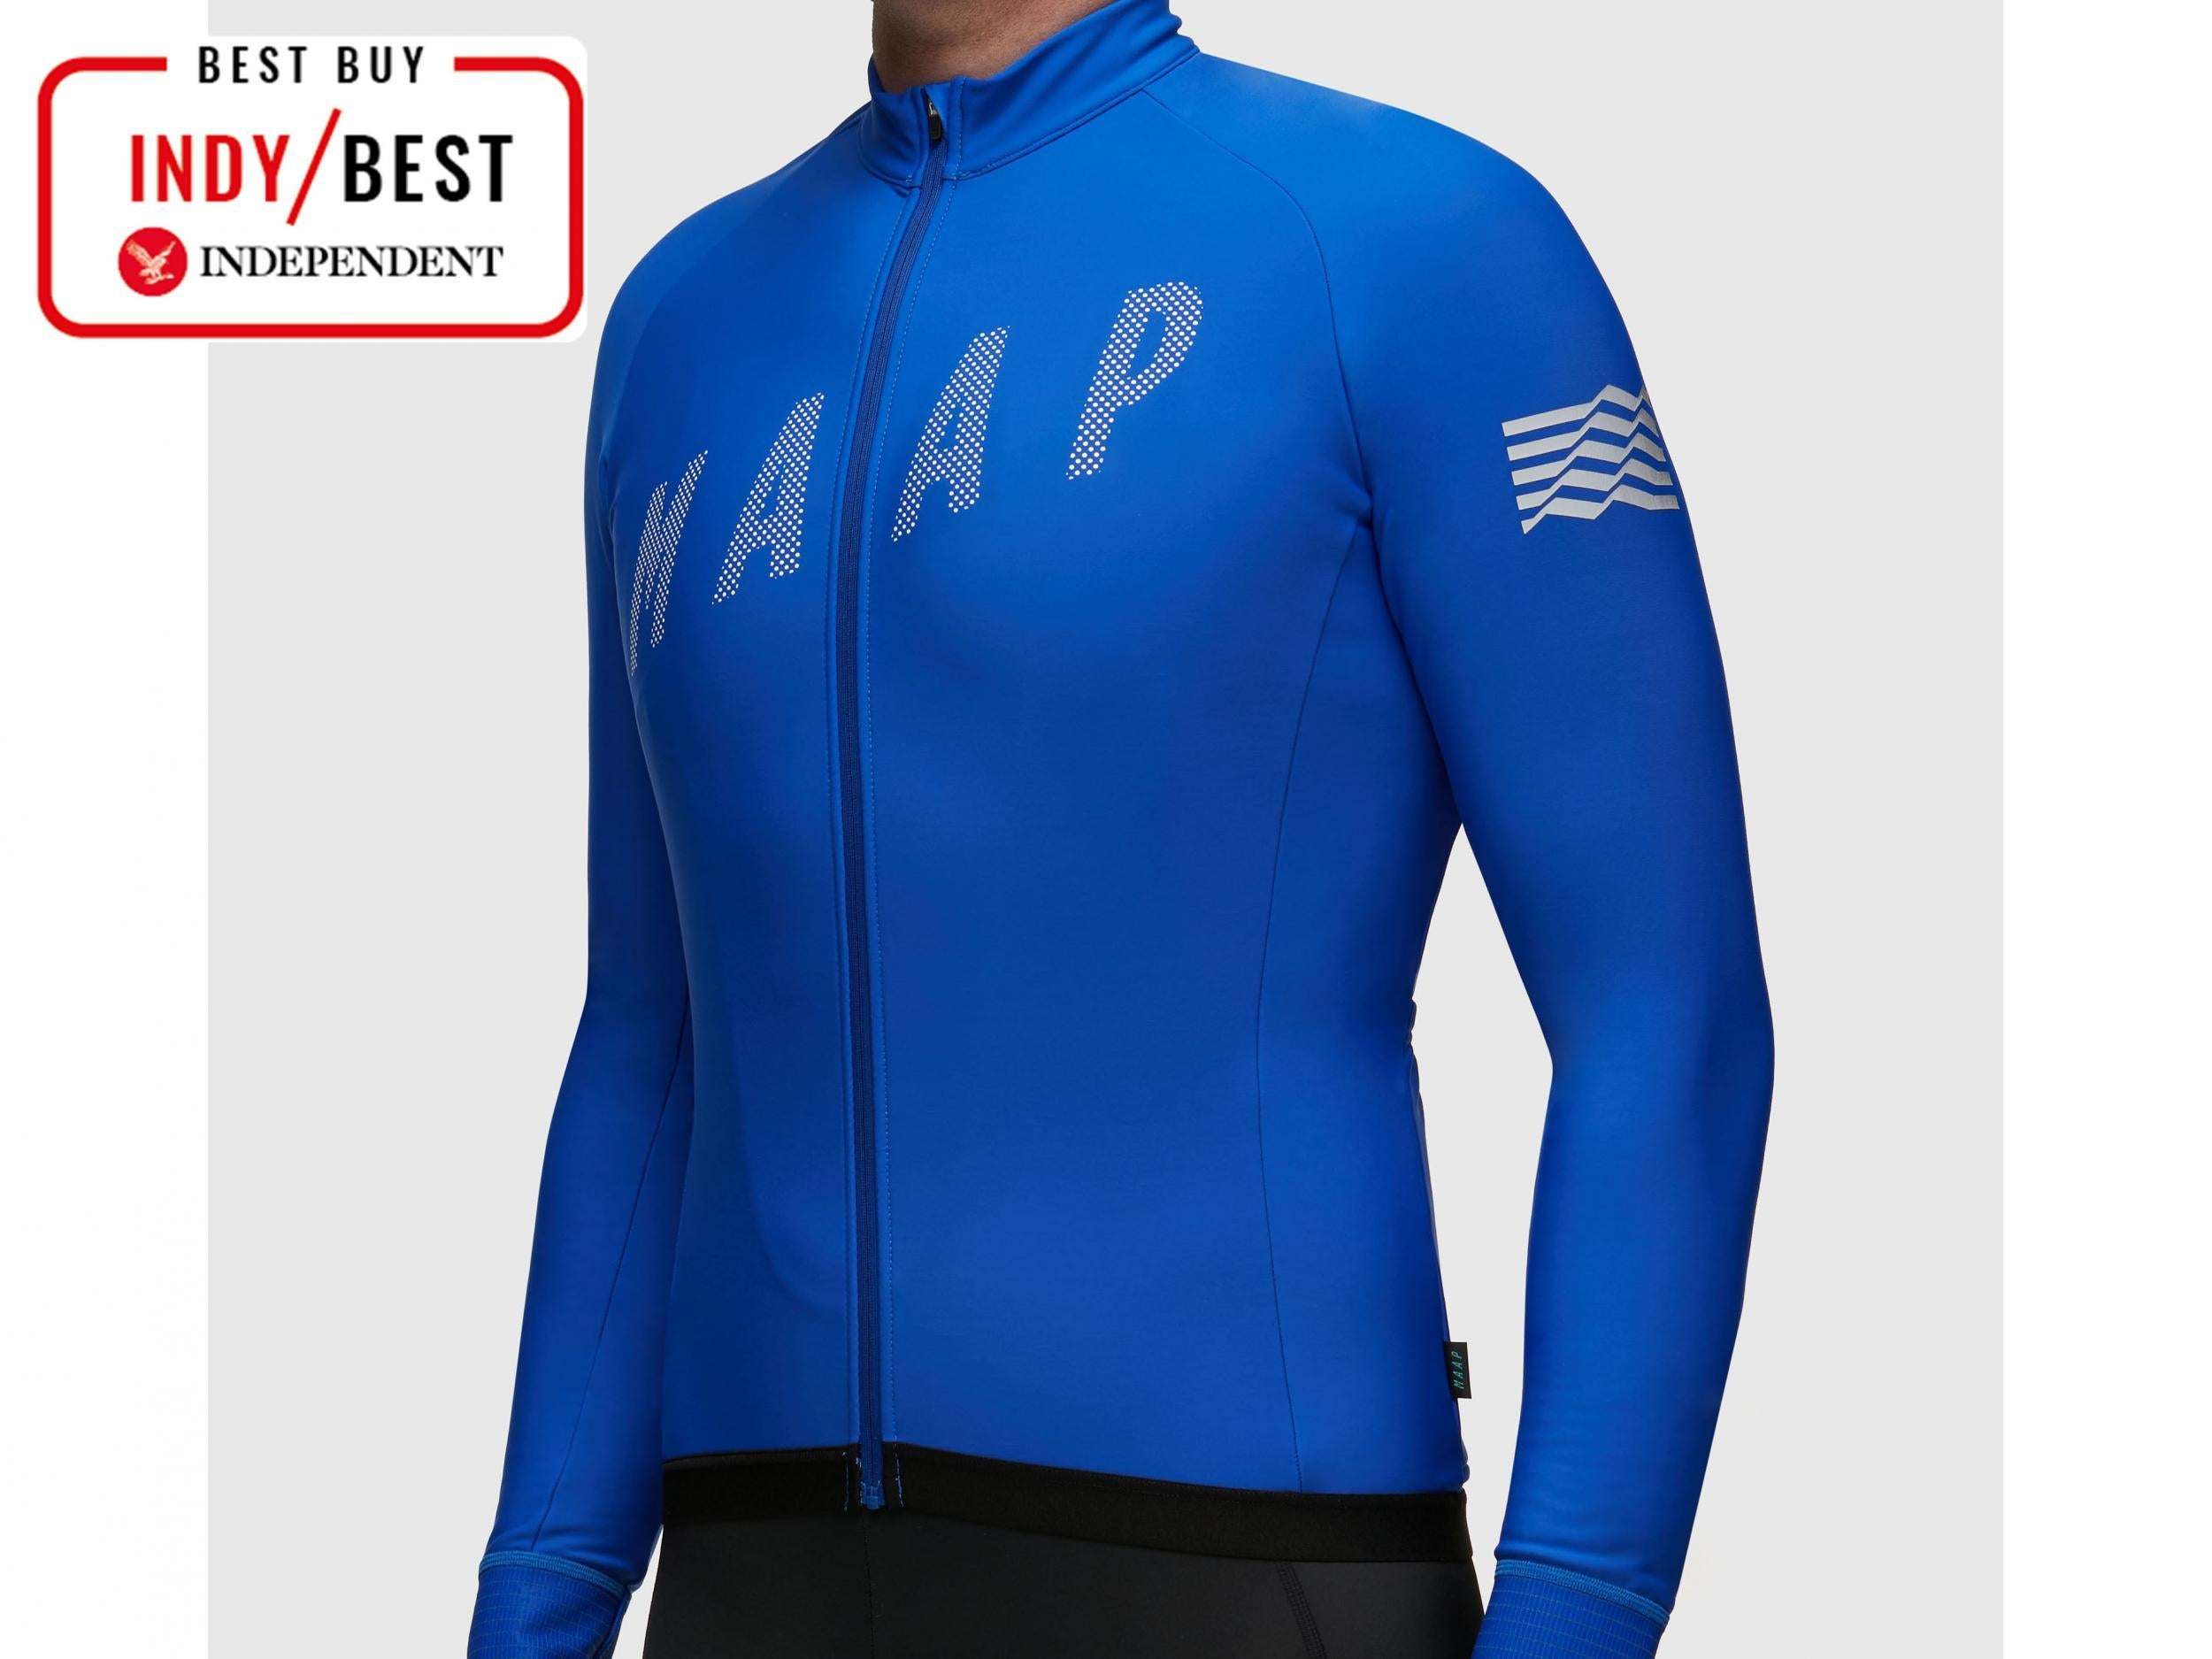 Aussie firm Maap is determined to brighten up our winter with this stunning  azure outfit. The cut is slim without being restrictive and the lightly  fleeced ... 0197d1236